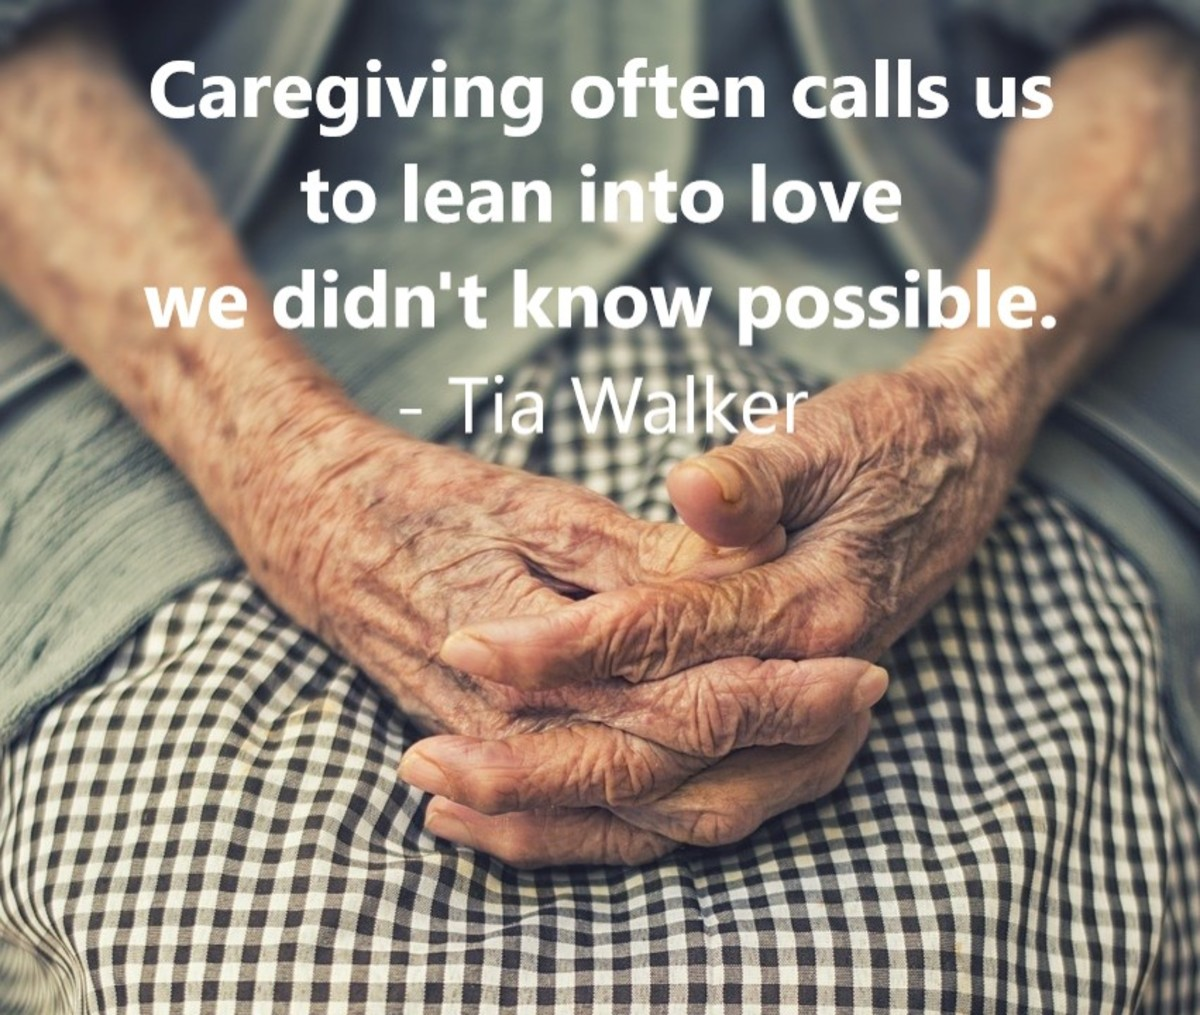 Caregiving often calls us to lean into love we didn't know possible.